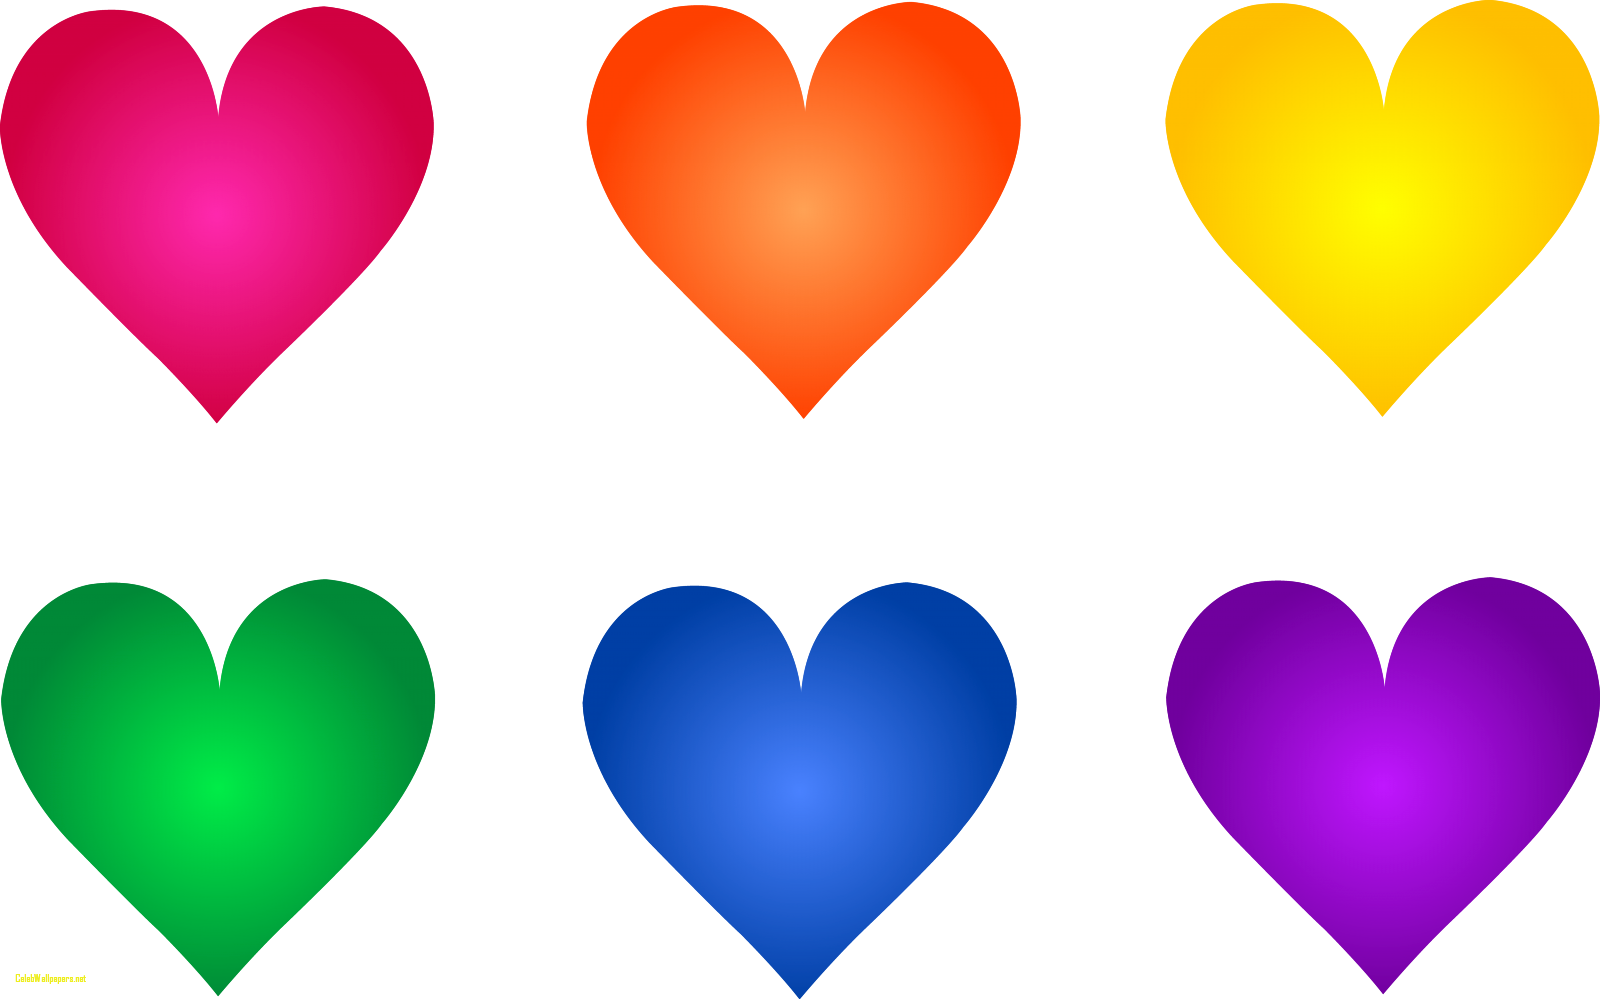 Hearts free clip art graphic royalty free stock Colorful Rainbow Heart Symbols Free Clip Art Awesome Images Of ... graphic royalty free stock